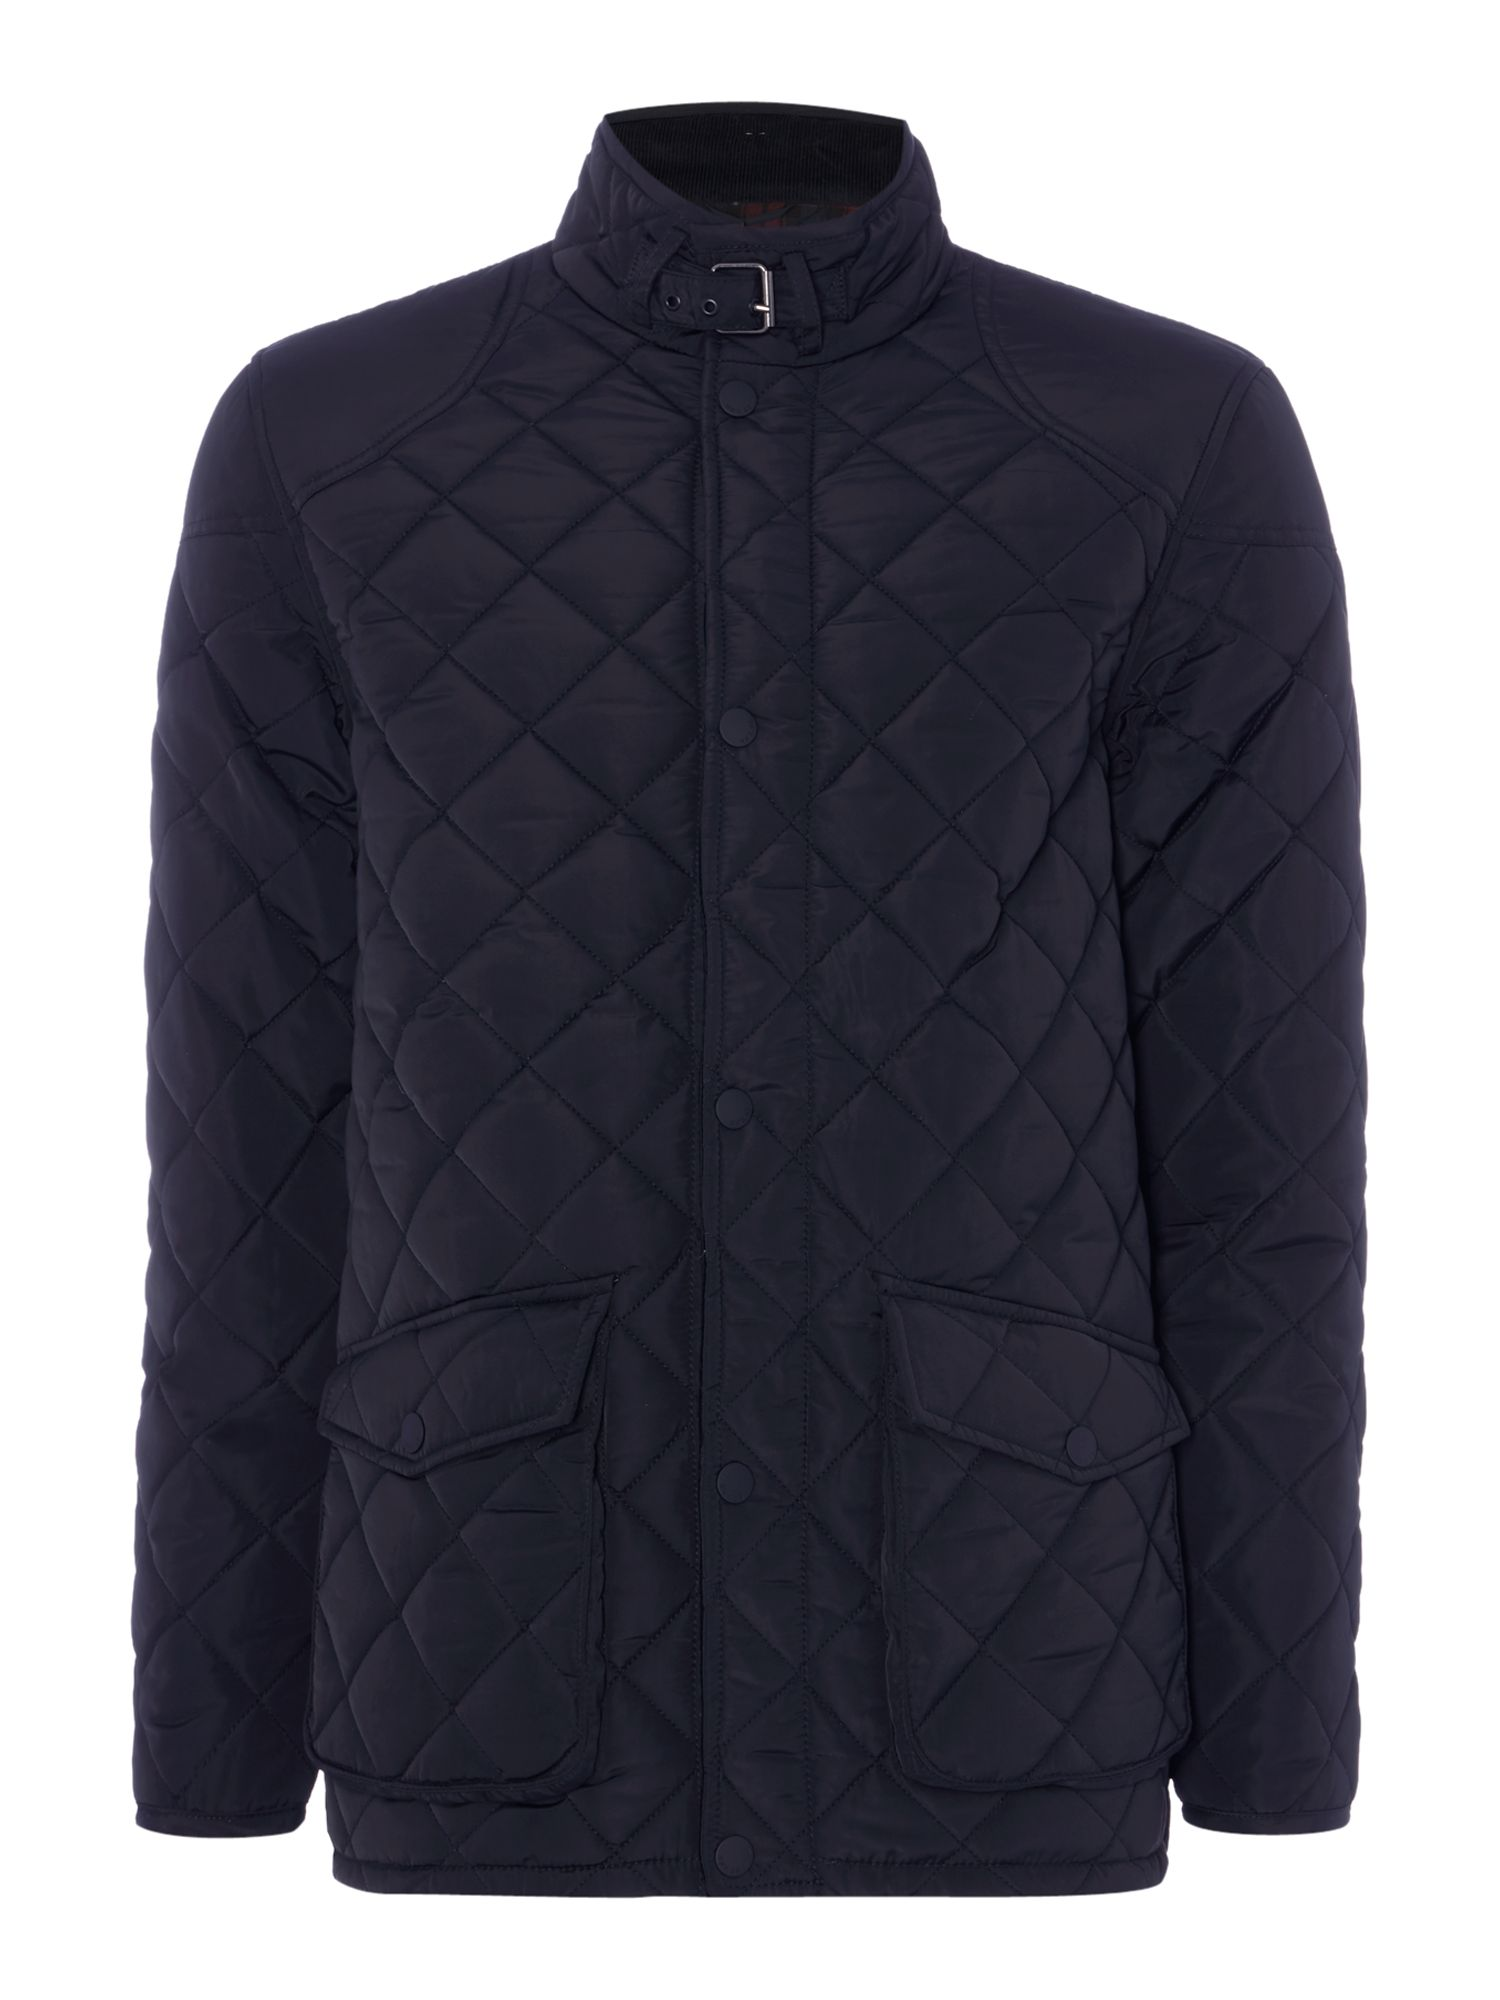 Howick Men's Howick The Pembroke Quilted Jacket, Midnight